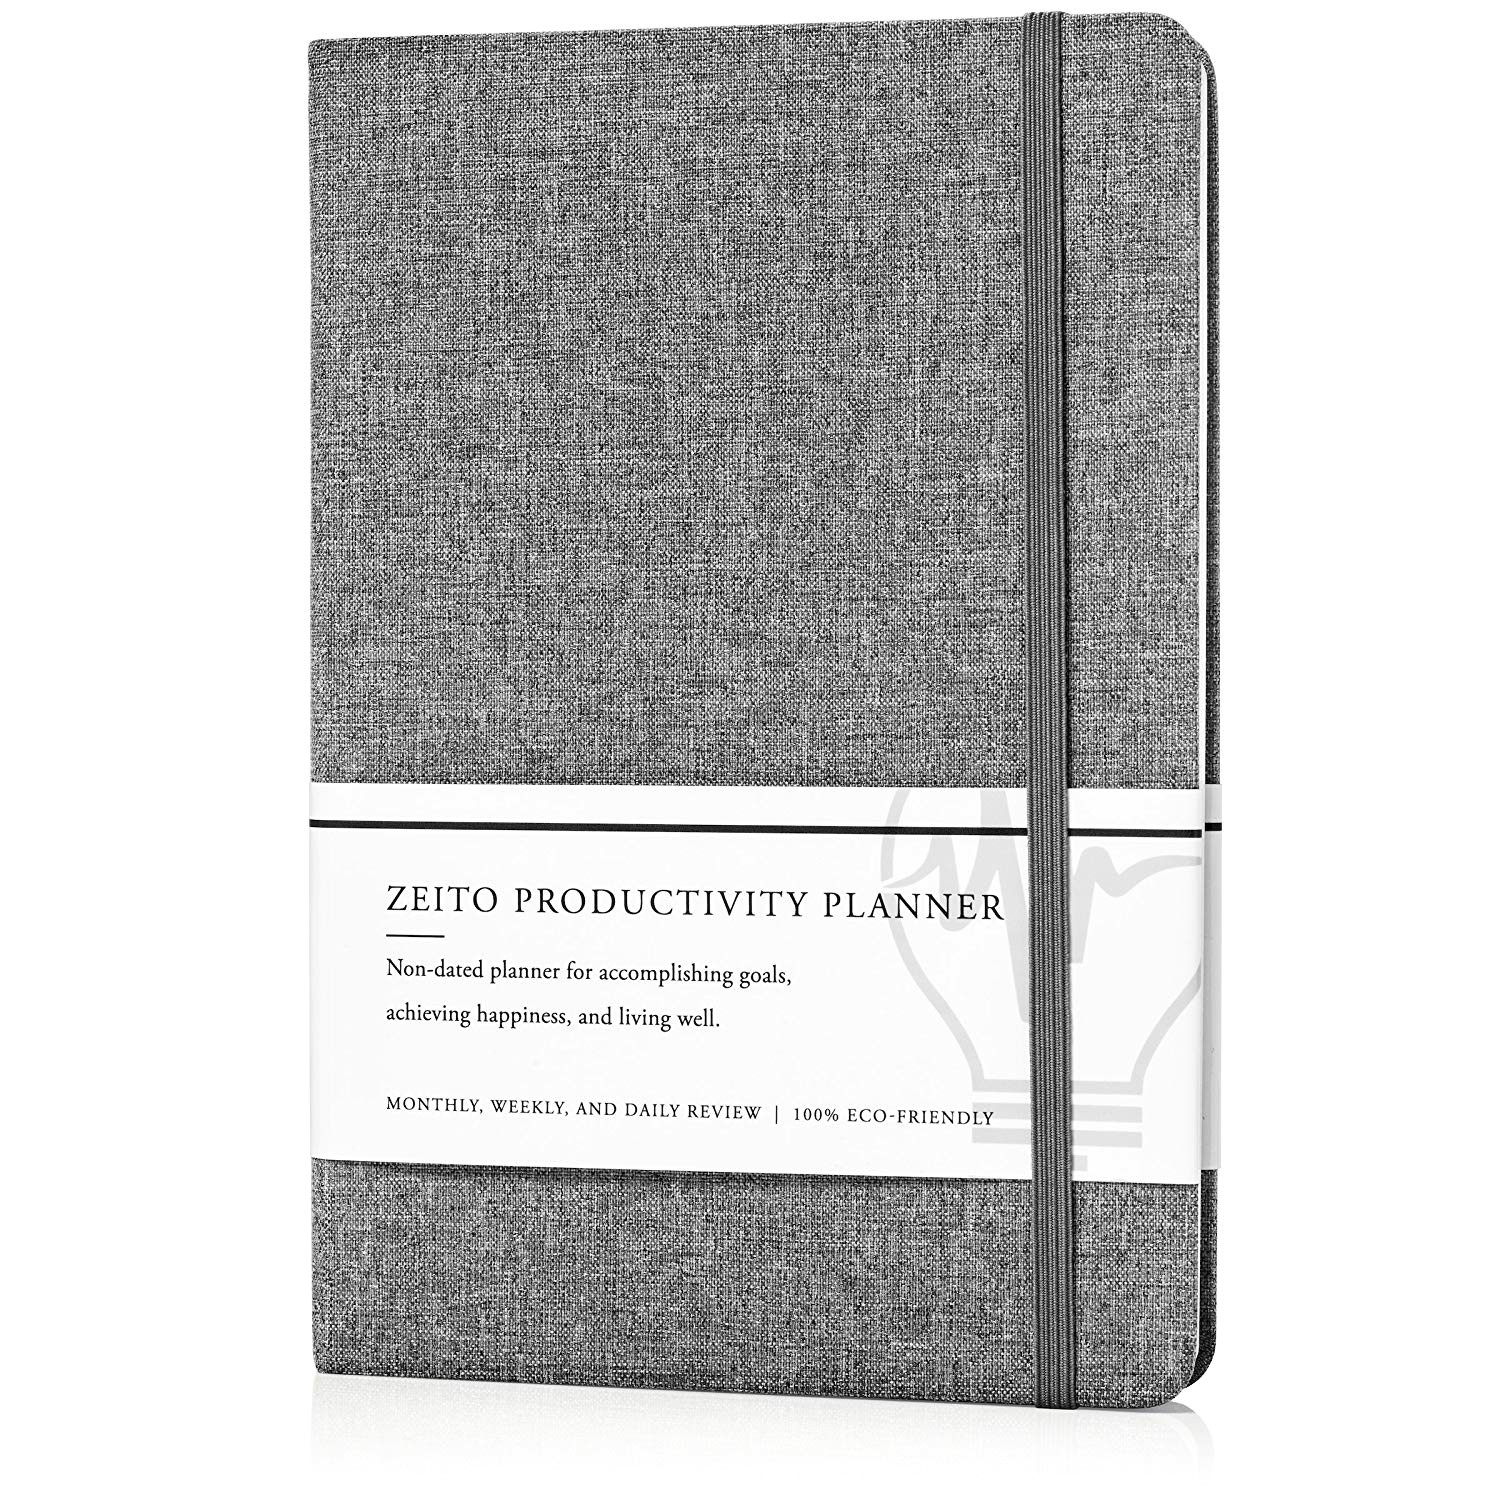 amazon com zeito productivity planner best undated monthly weekly and daily agenda planner for increasing motivation accomplishing goals and living